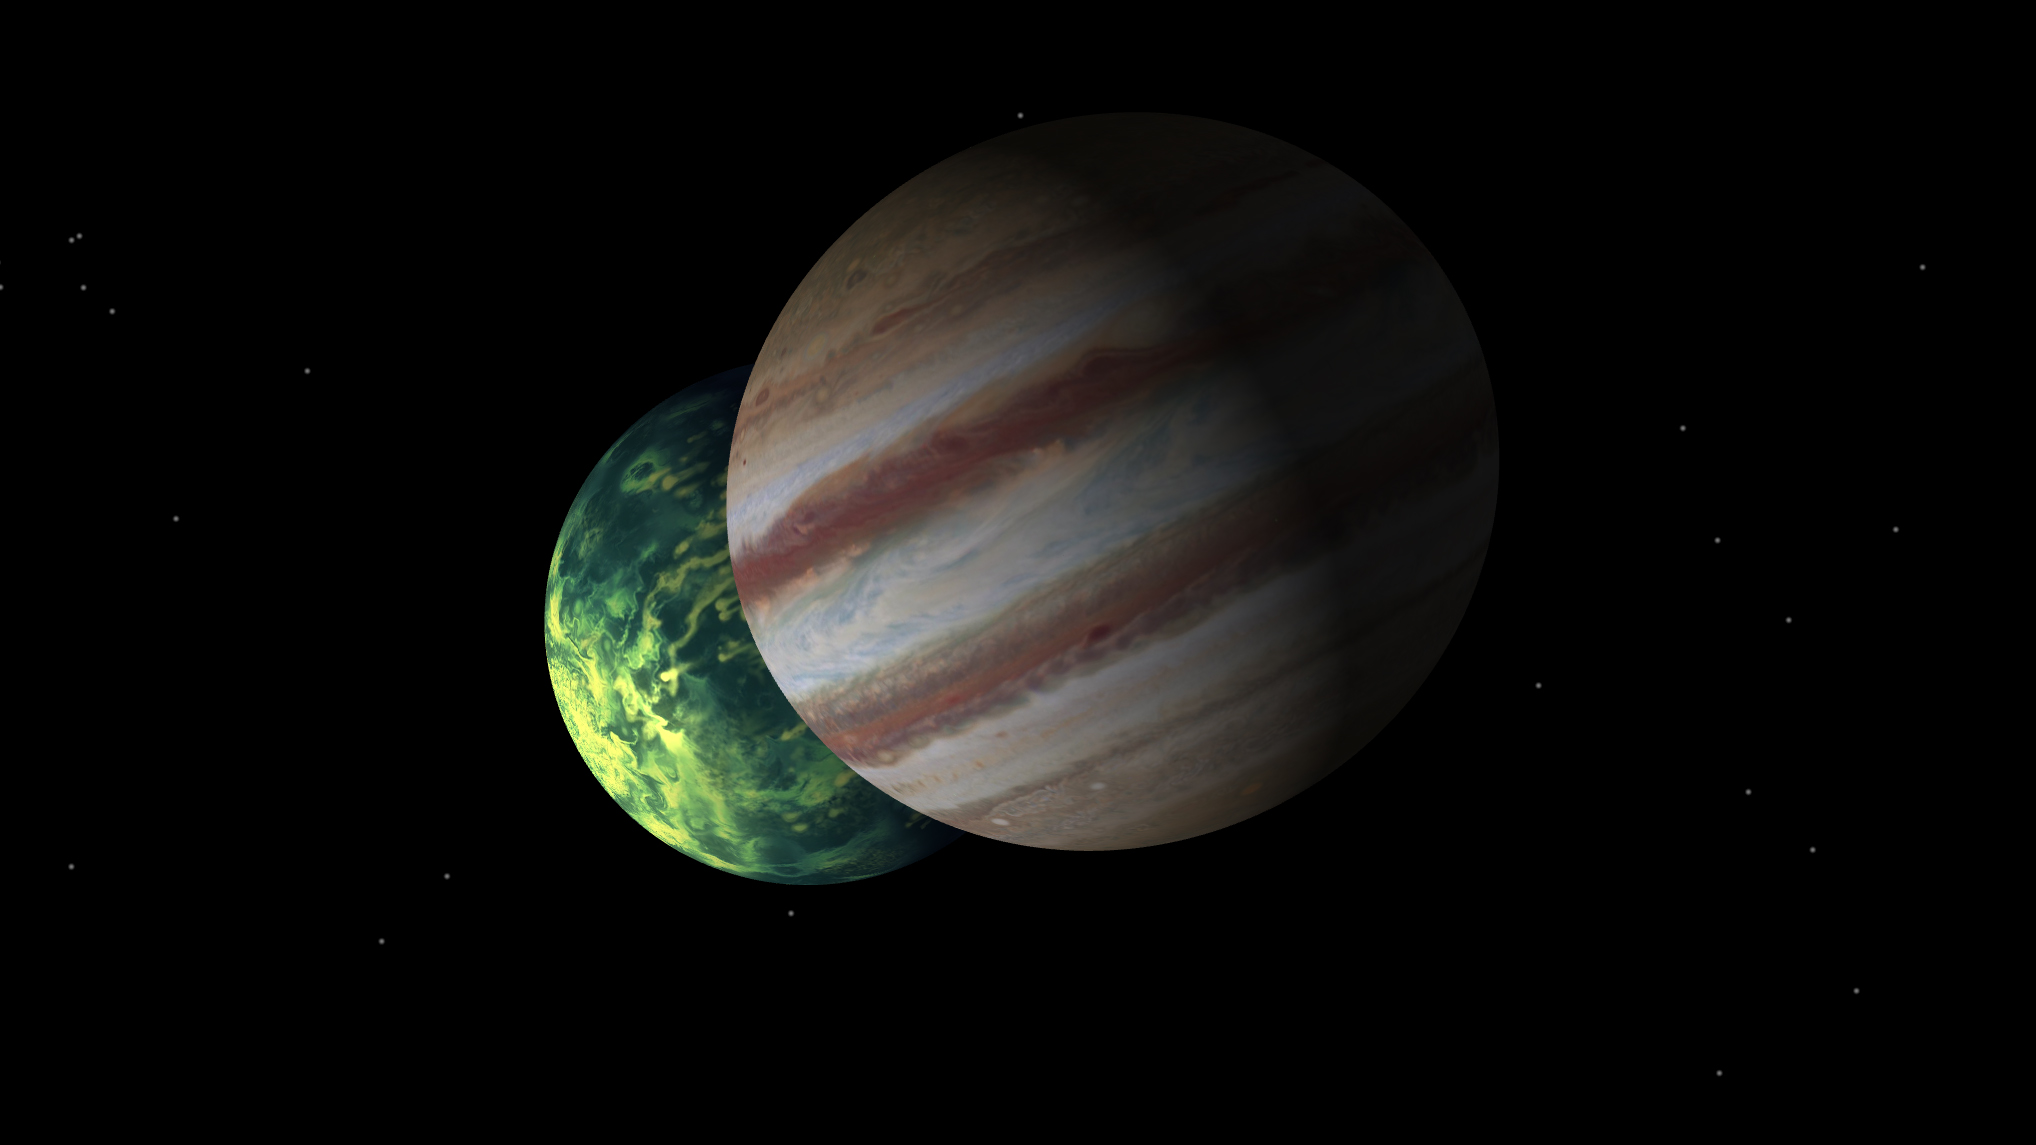 Comparing Jupiter with Jupiter-like planets that orbit other stars can teach us about those distant worlds, and reveal new insights about our own solar system's formation and evolution. (Illustration) – Image Credits: NASA/JPL-Caltech